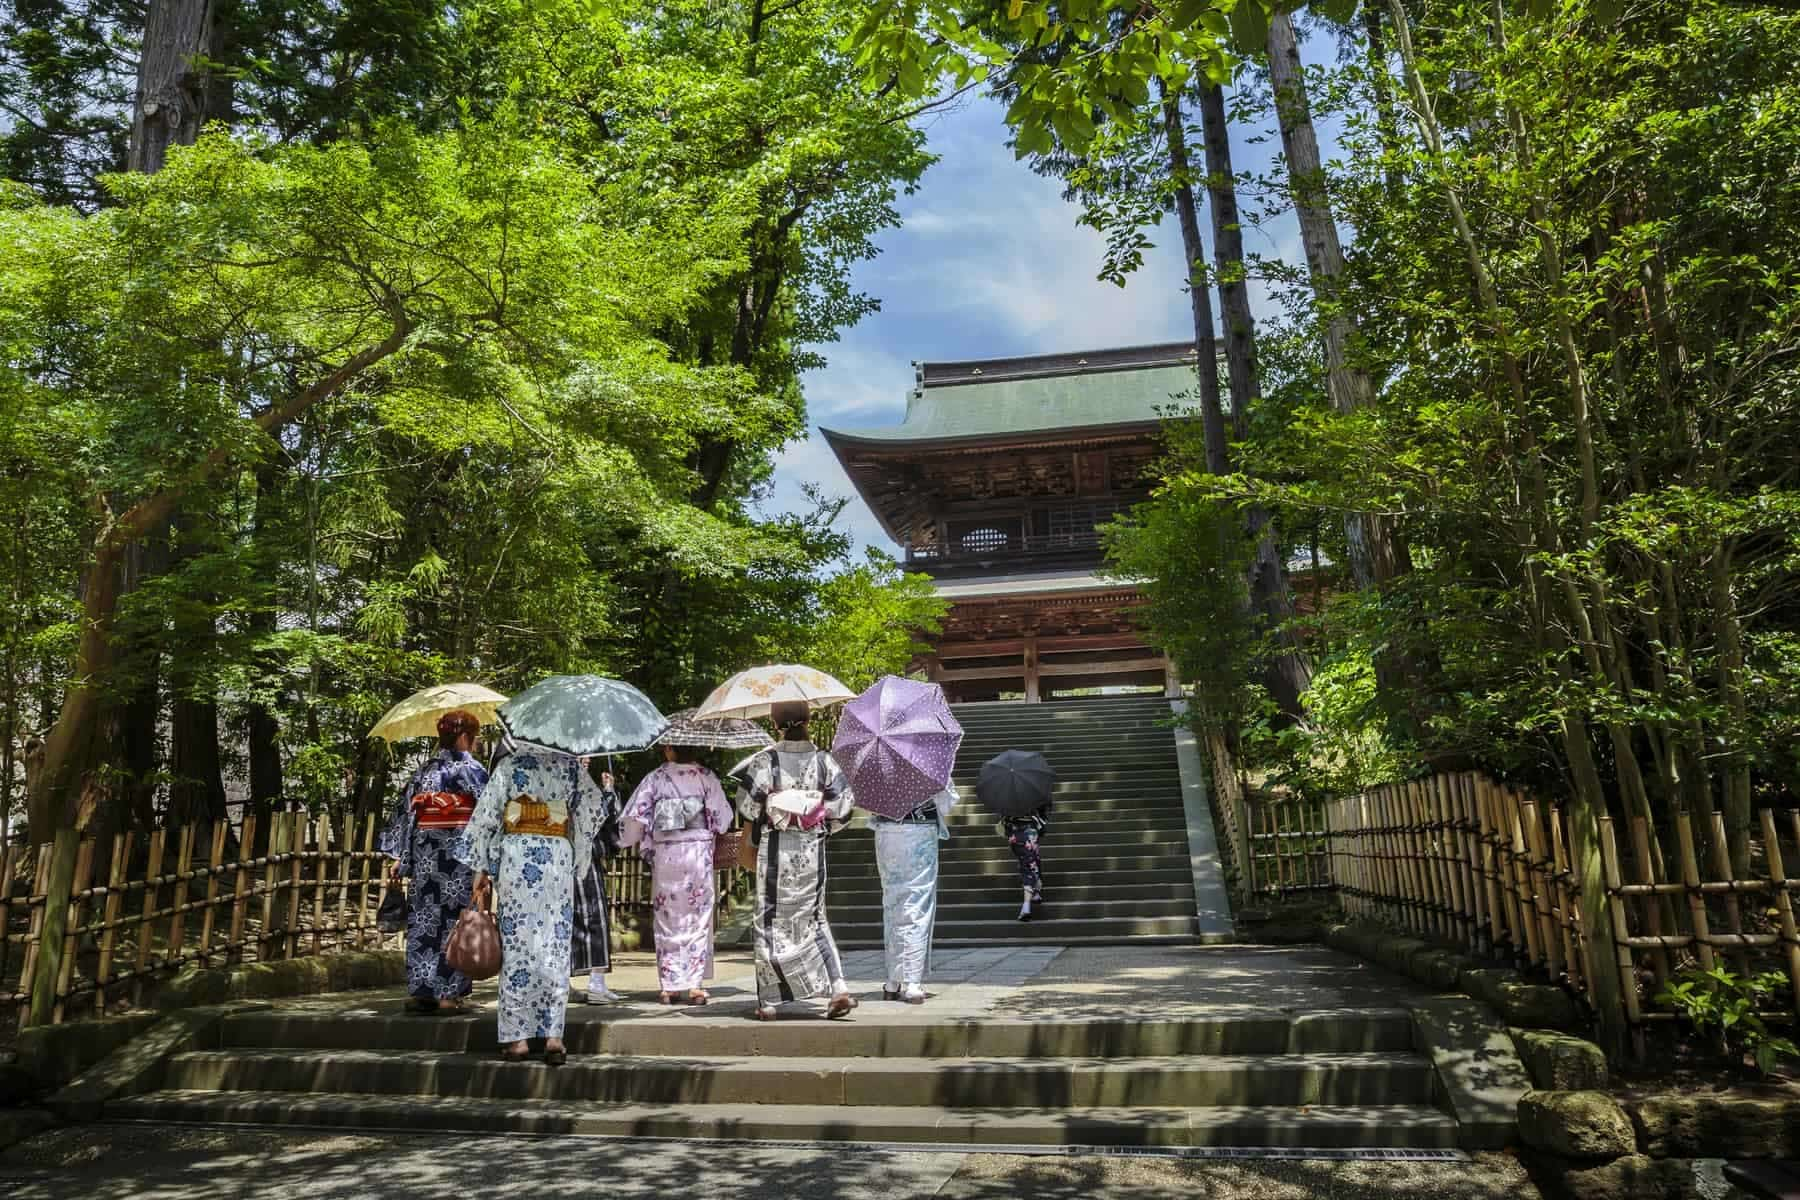 Women in traditional kimonos in front of a temple in Kamakura, Kanagawa prefecture, Japan.